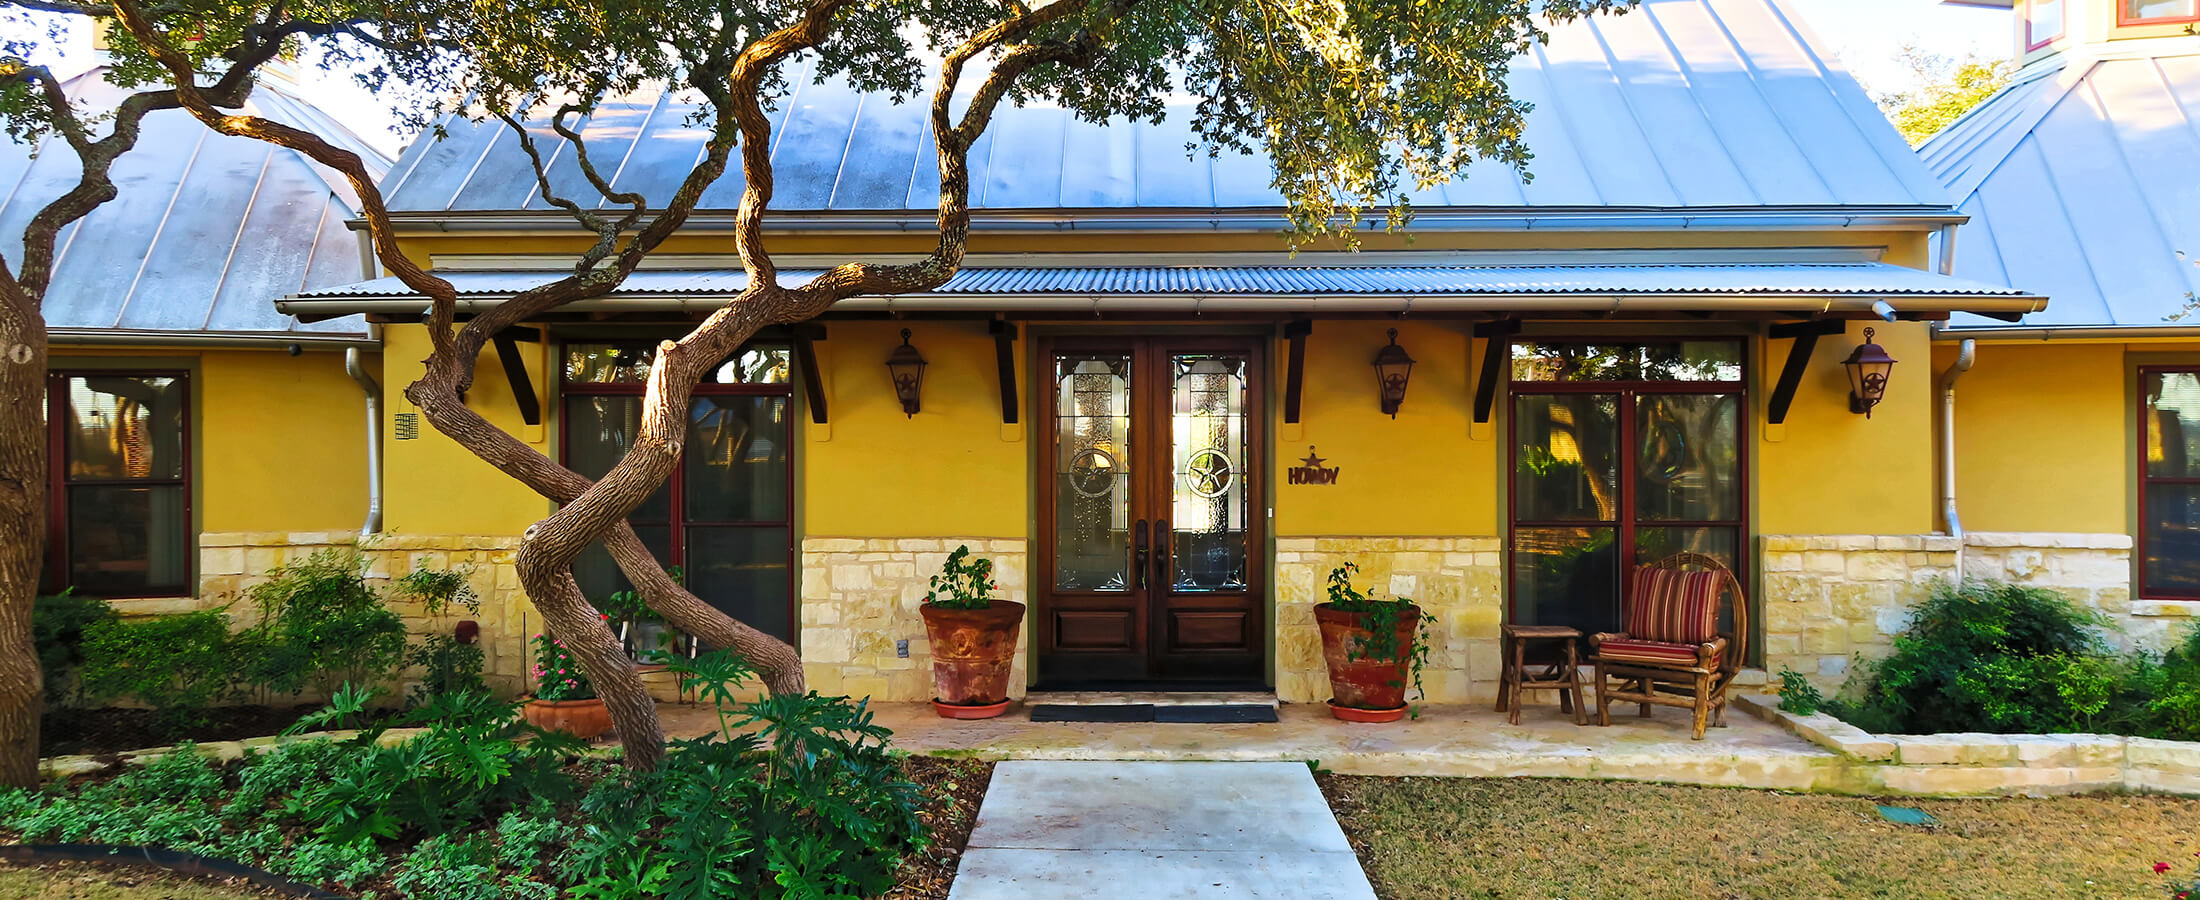 Hill Country Dream Team Realty | Featured Property Listings